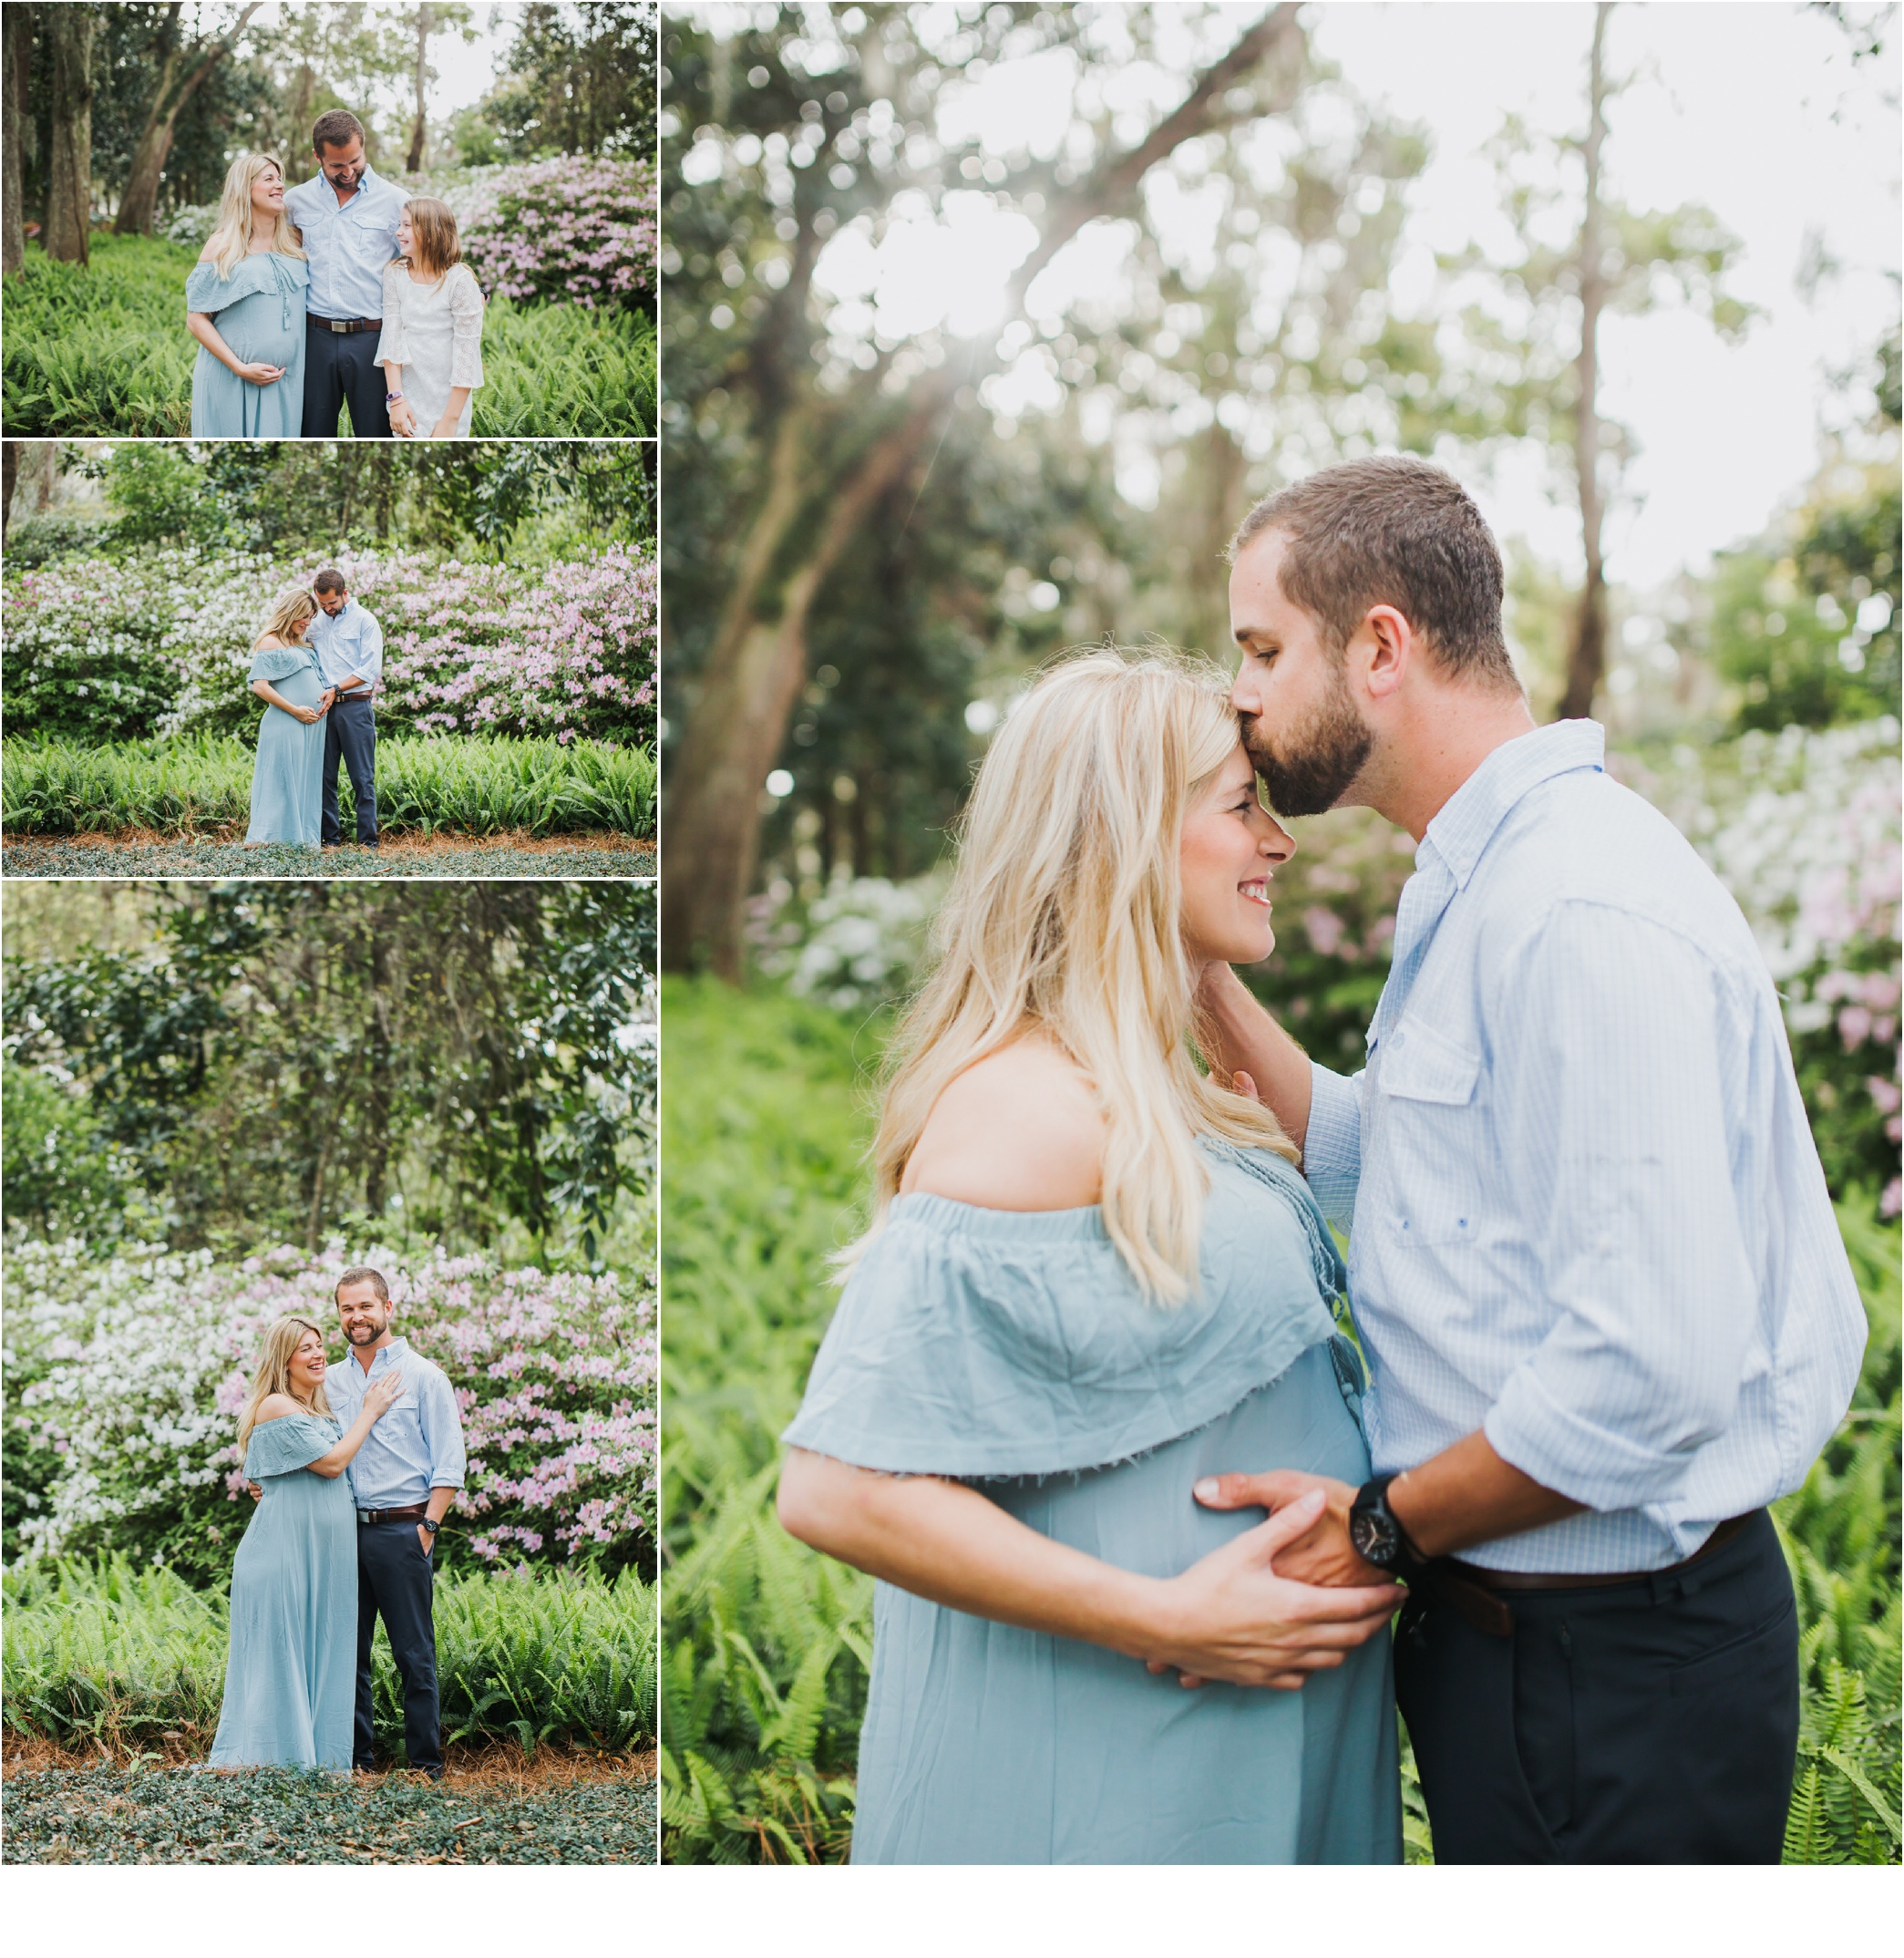 Rainey_Gregg_Photography_St._Simons_Island_Georgia_California_Wedding_Portrait_Photography_1738.jpg